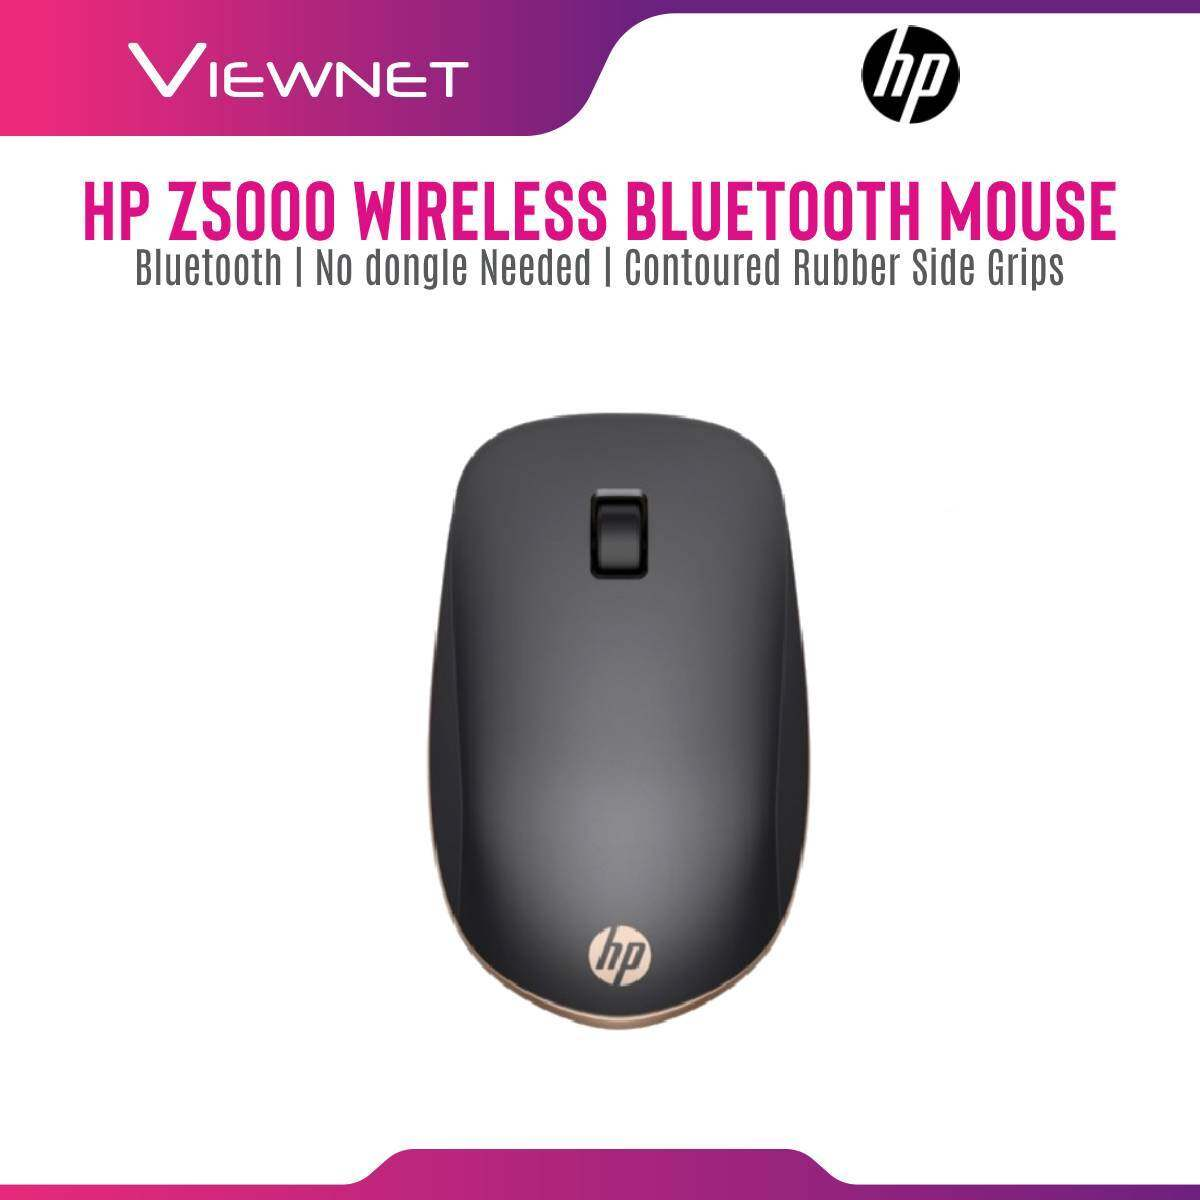 Hp Wireless Bluetooth Mouse Z5000 (W2Q00AA#UUF)